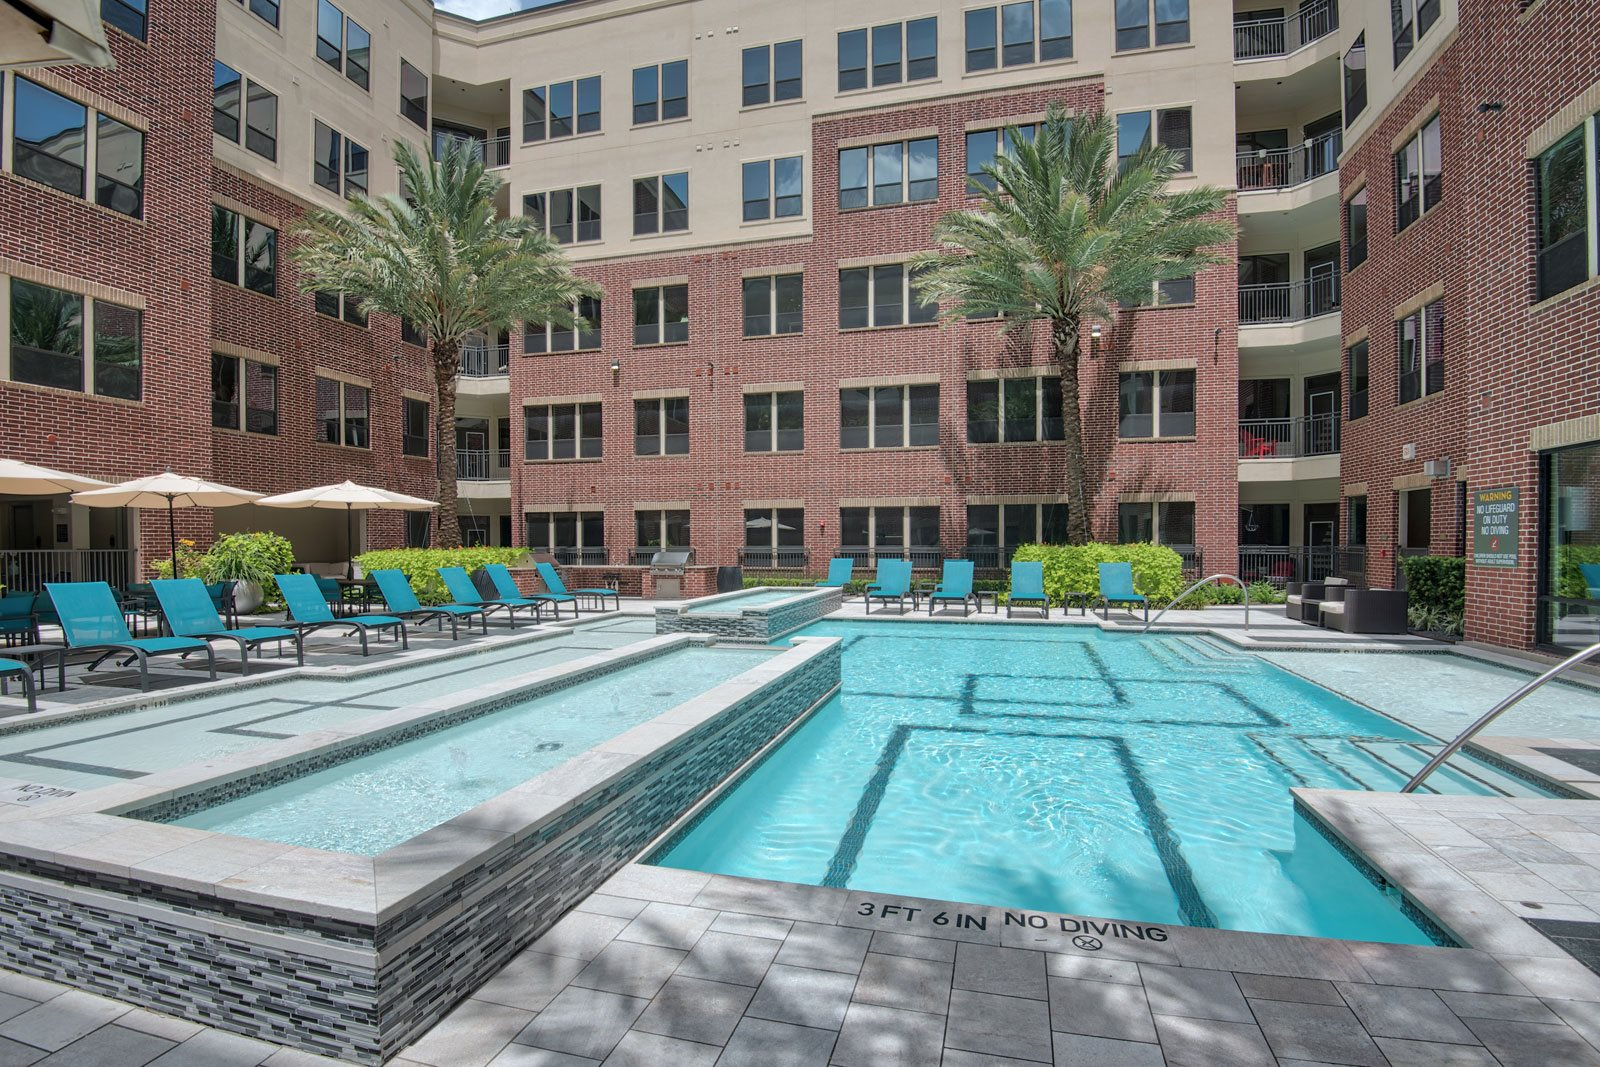 Outdoor Grilling Stations and Lounge Areas at Midtown Houston by Windsor, 77002, Houston